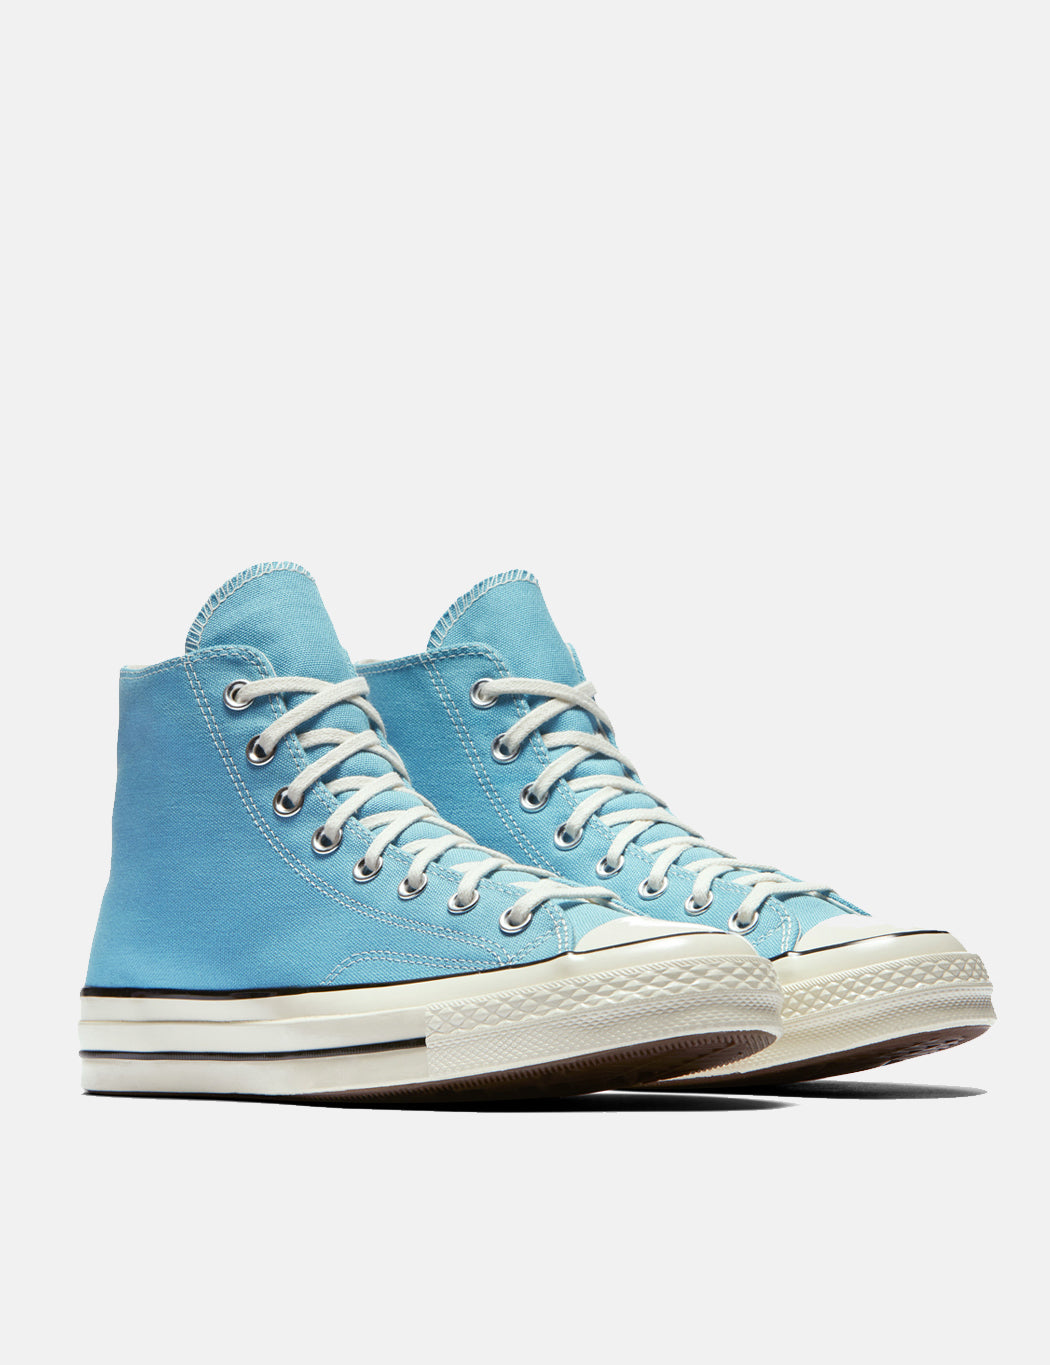 Converse 70's Chuck Hi 161440C (Canvas) - Shoreline Blue/Black/Egret